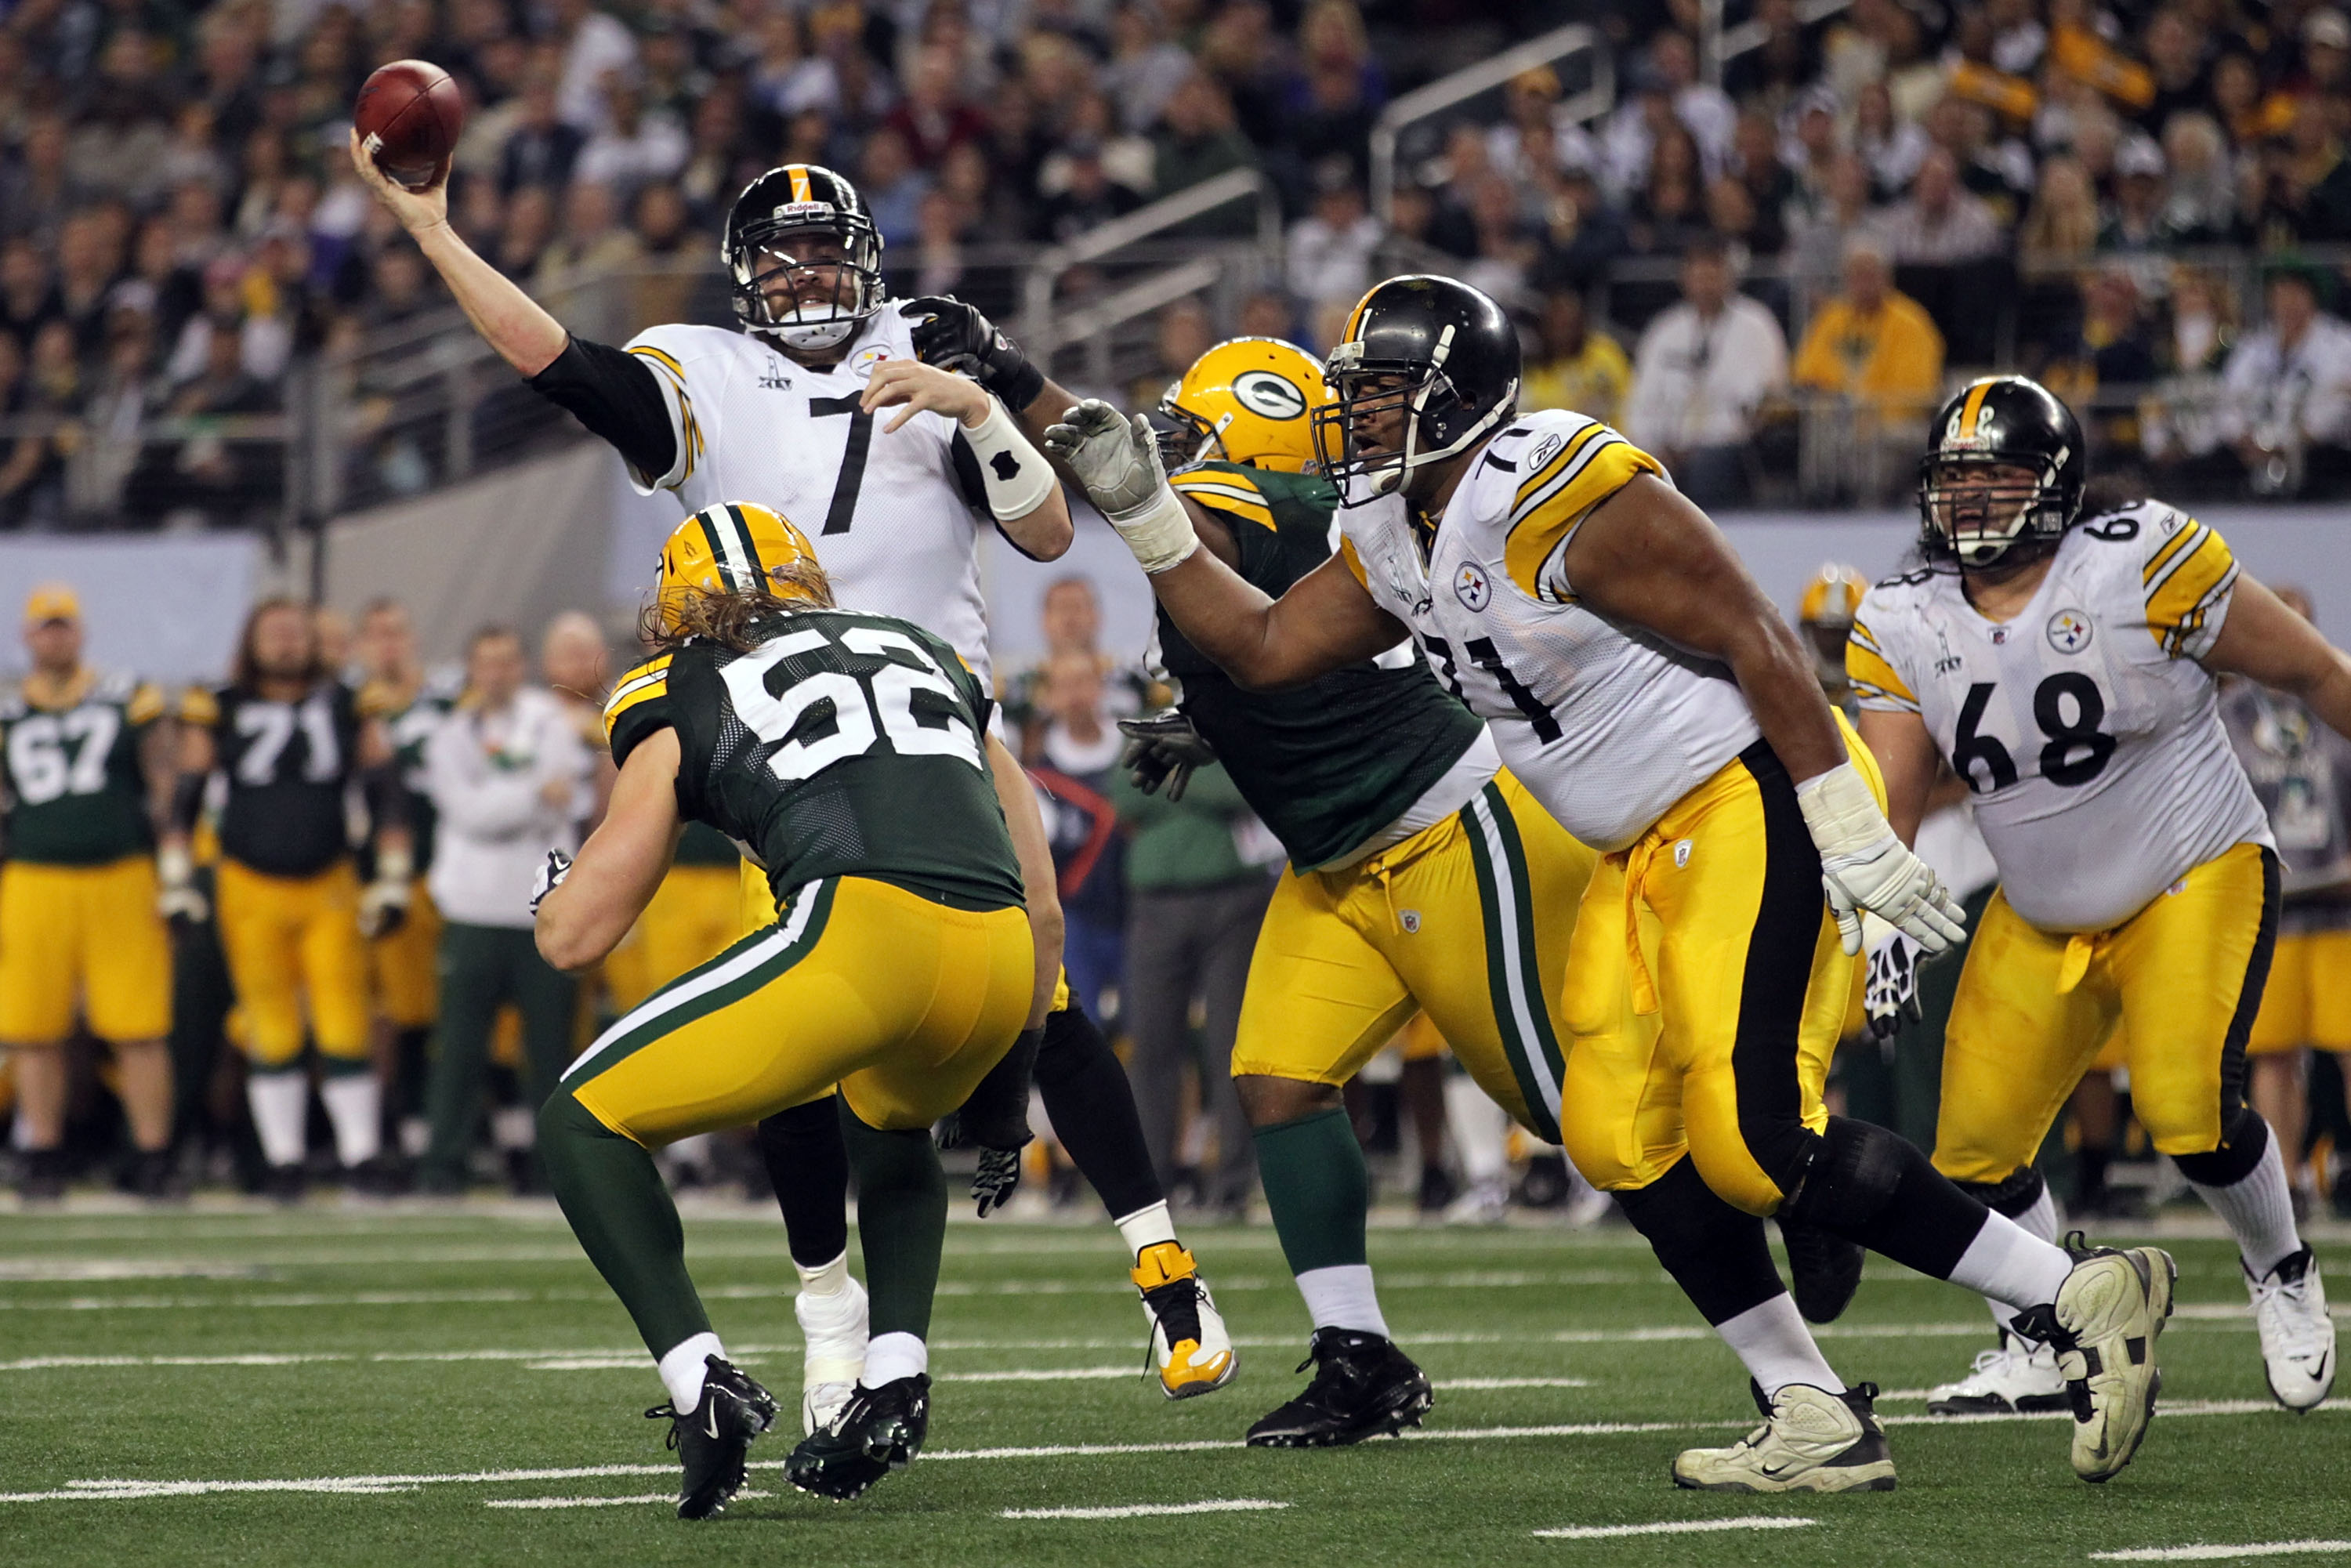 ARLINGTON, TX - FEBRUARY 06:  Ben Roethlisberger #7 of the Pittsburgh Steelers passes against the Green Bay Packers during Super Bowl XLV at Cowboys Stadium on February 6, 2011 in Arlington, Texas.  (Photo by Doug Pensinger/Getty Images)